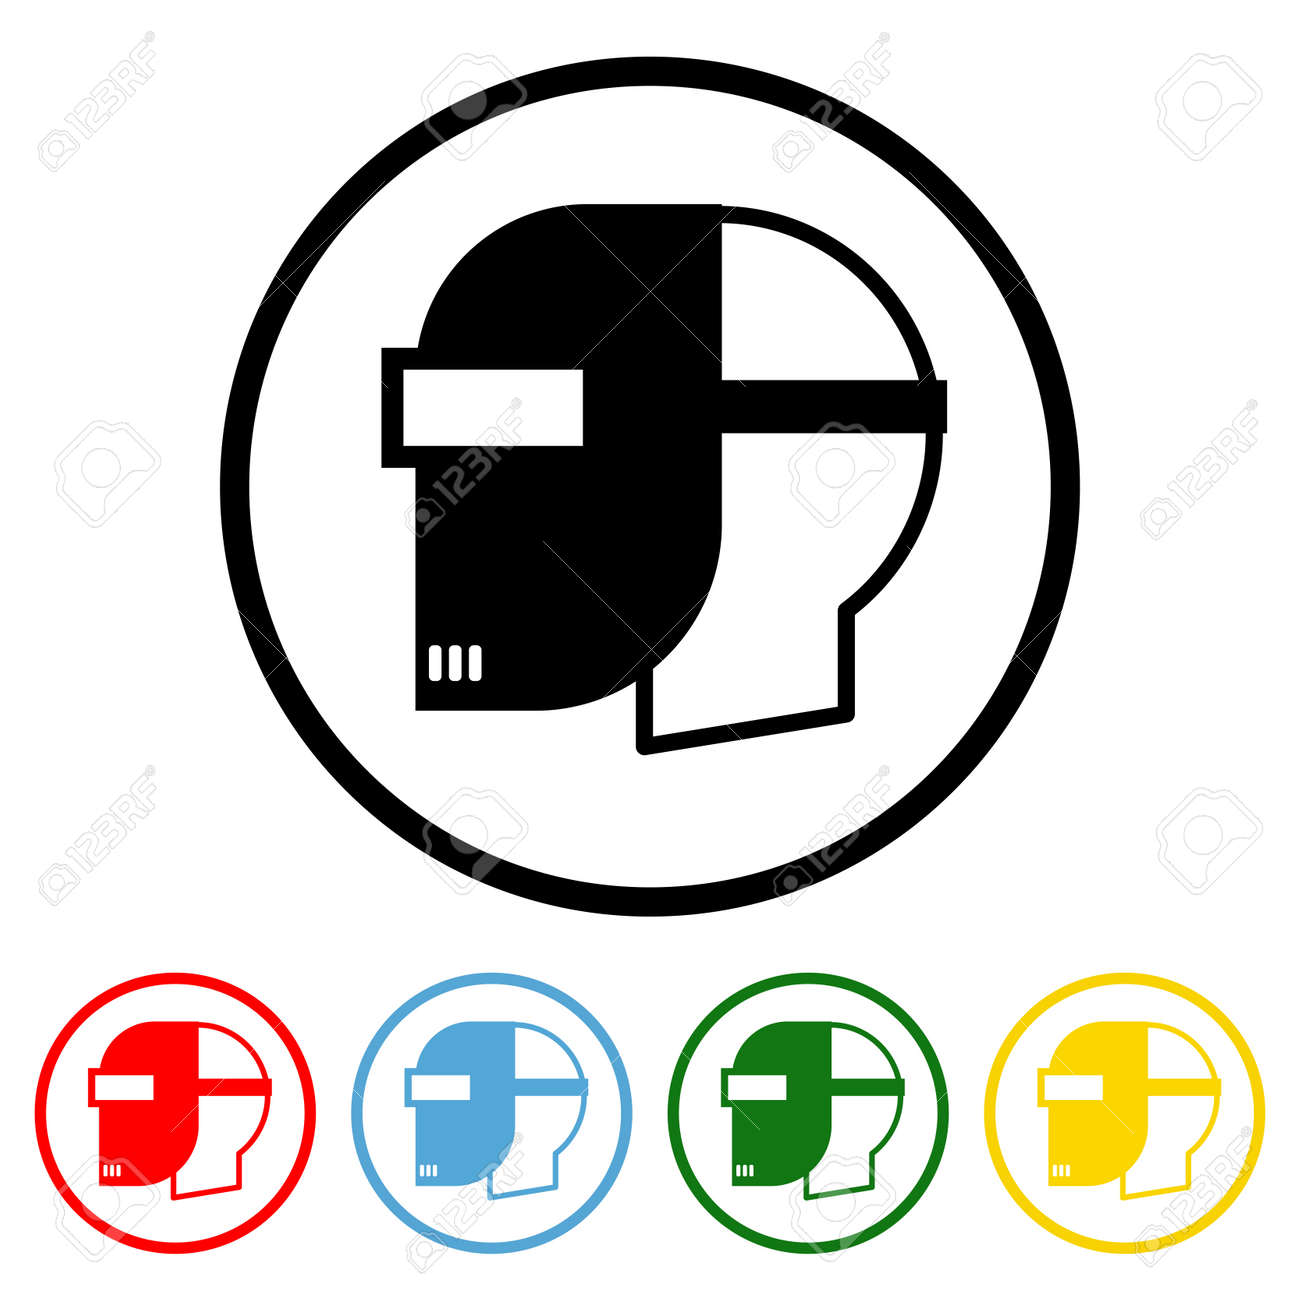 Safety Helmet icon vector illustration design element with four color variations. Vector illustration. All in a single layer. Elements for design. Welding Mask Icon flat design. - 172313406